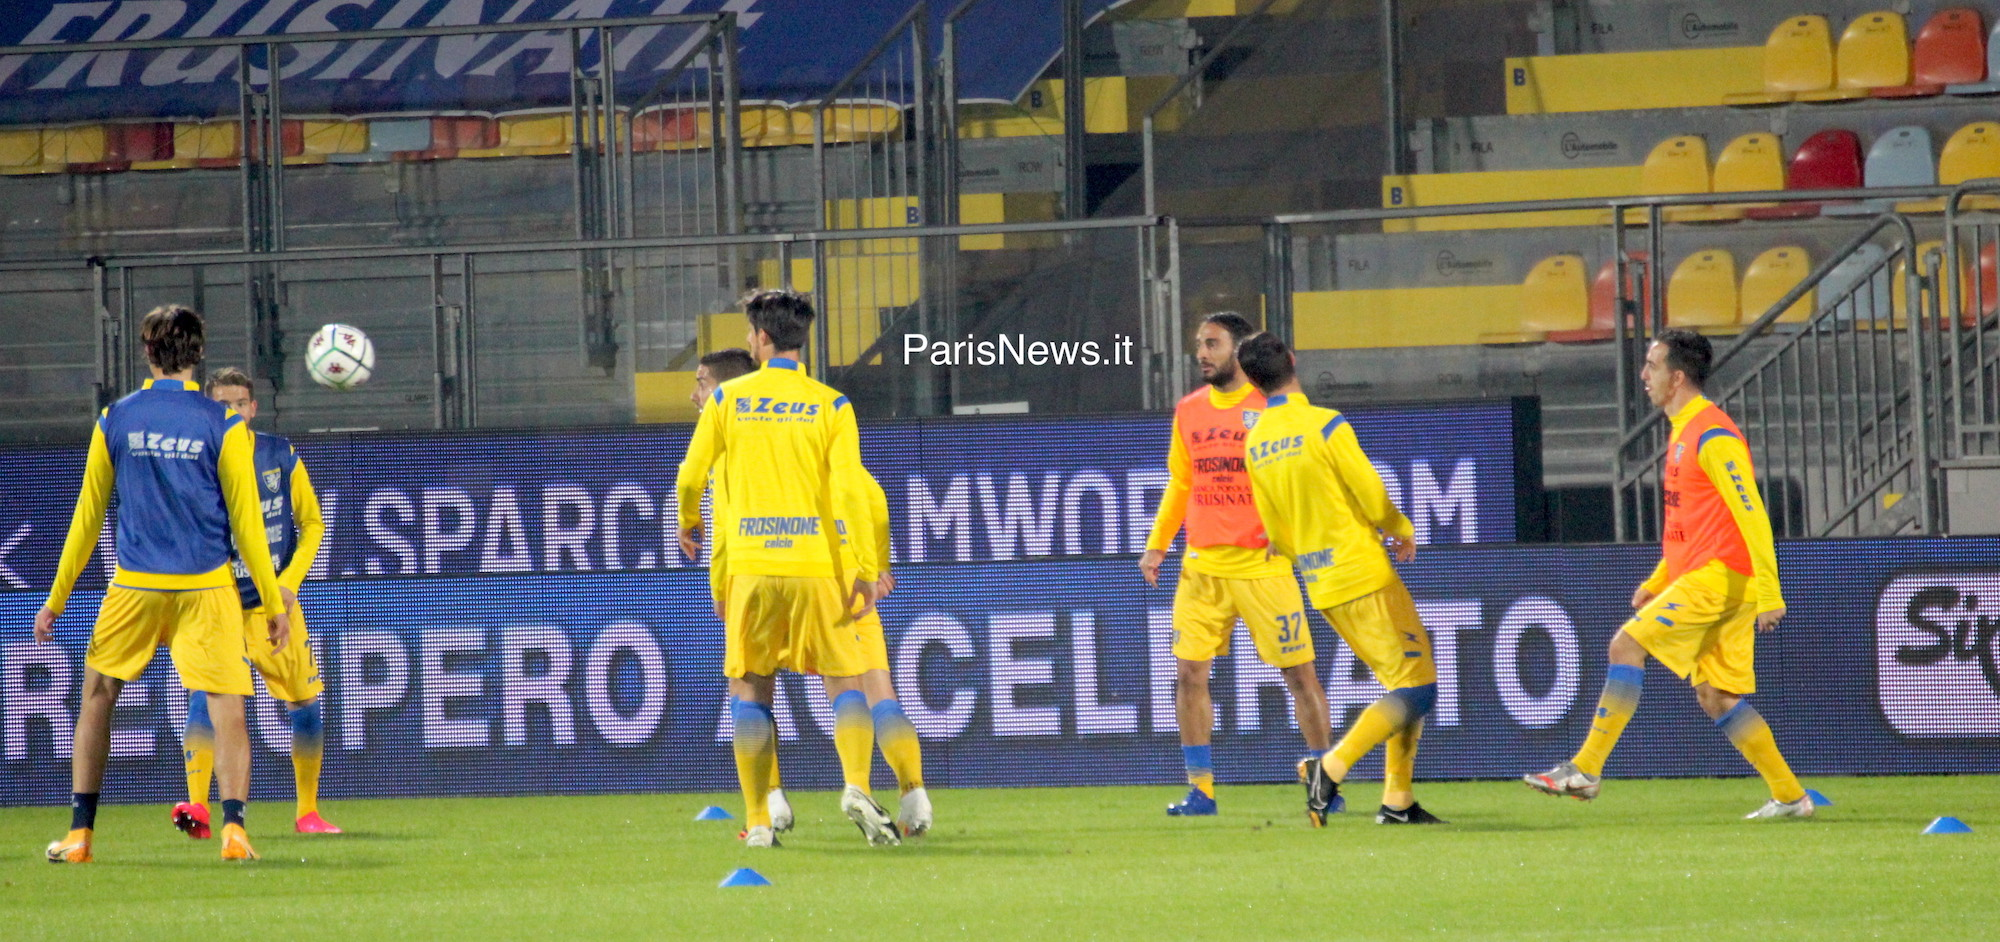 Frosinone - Virtus Entella 0-0 fin.